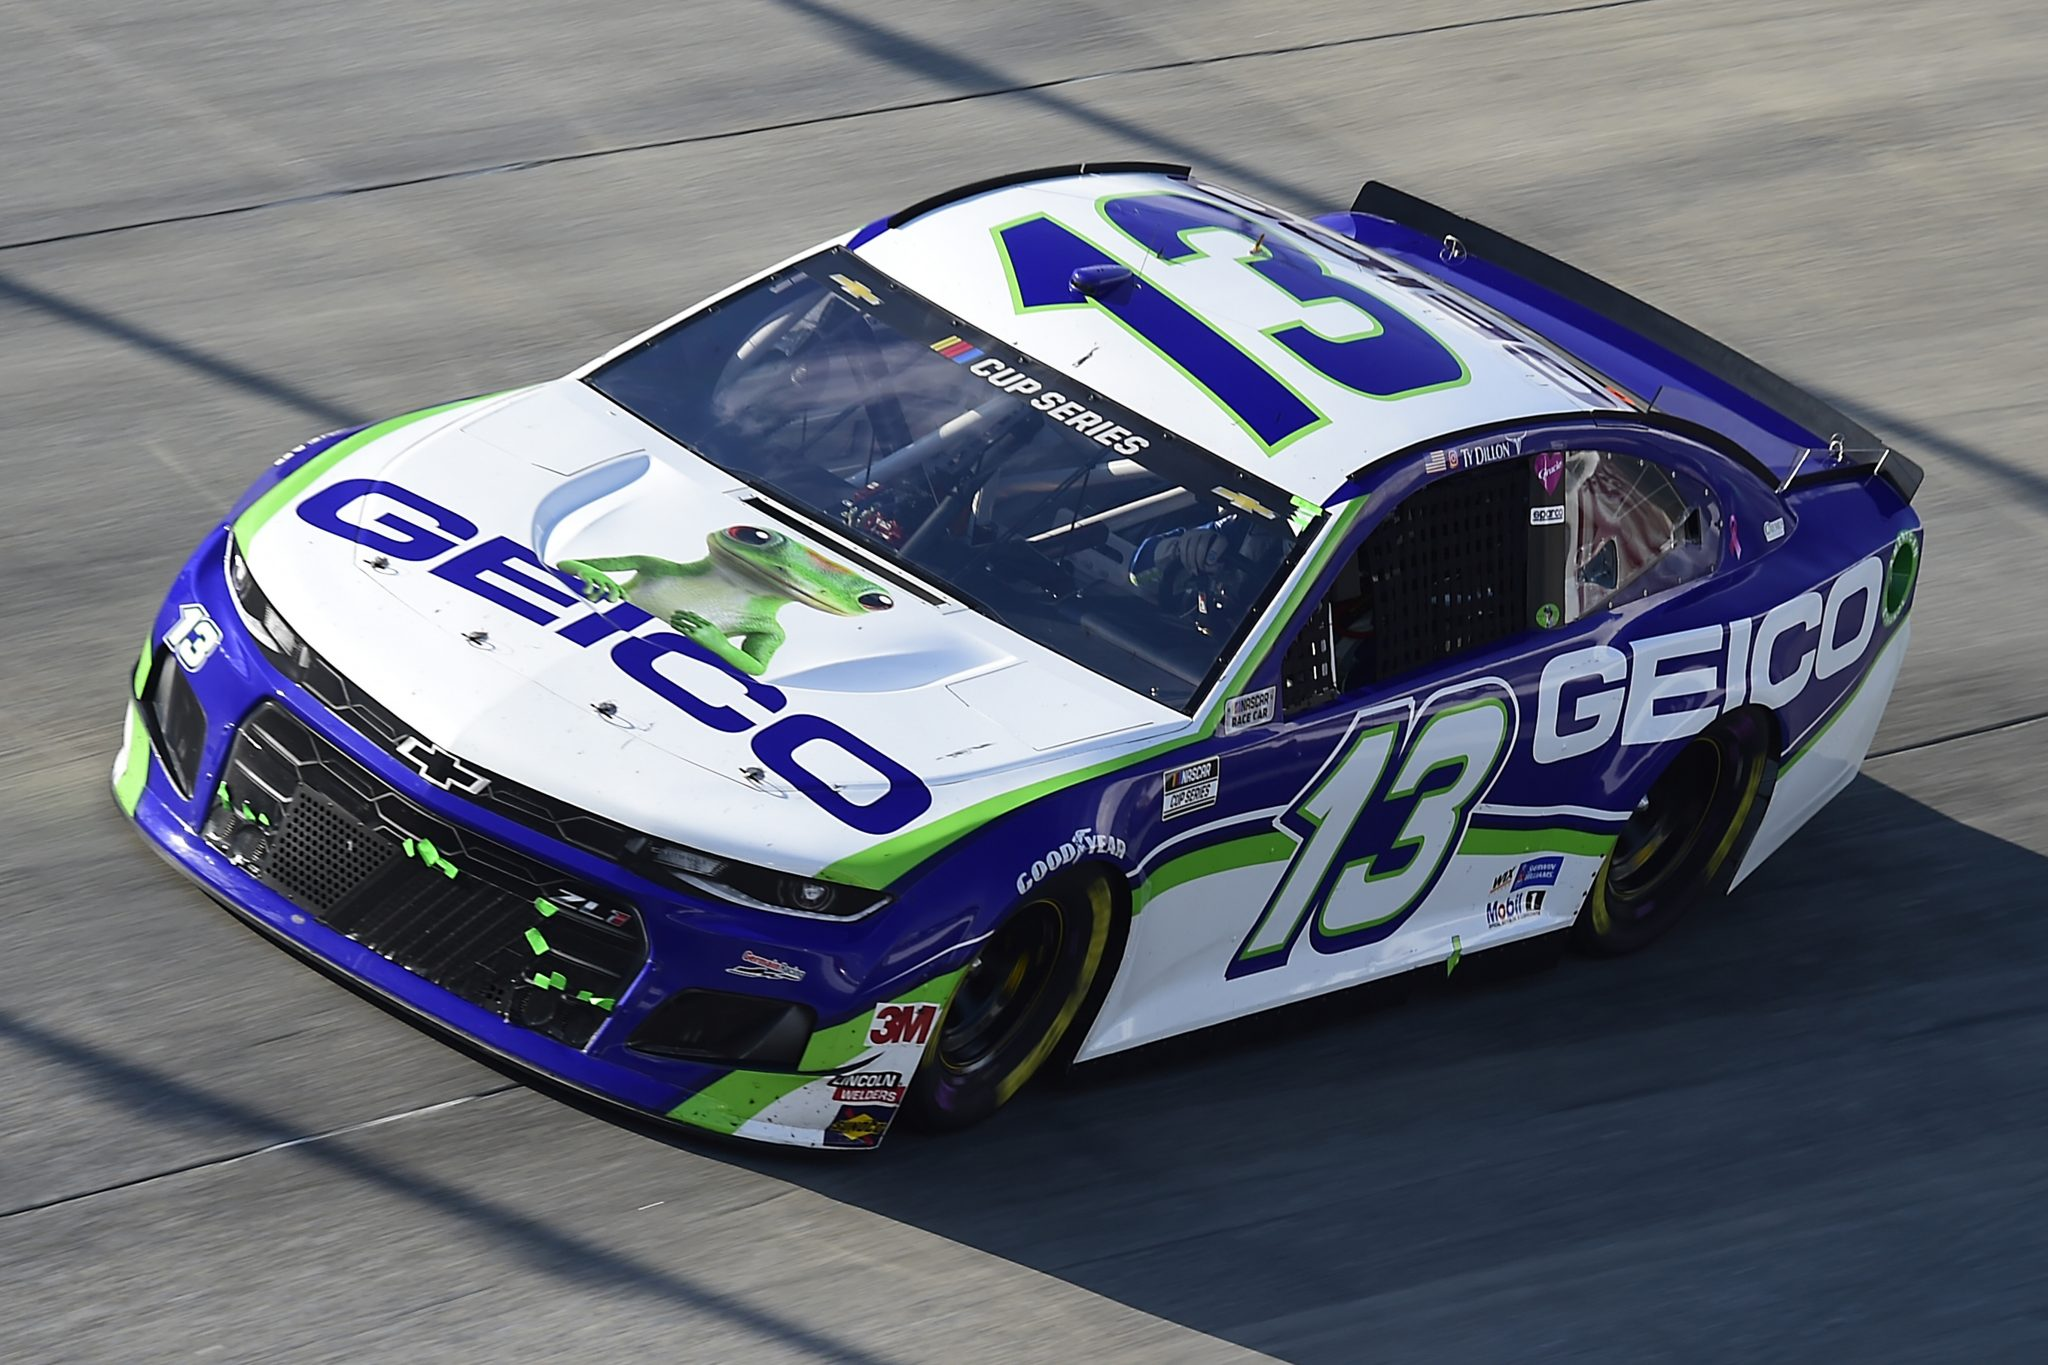 DOVER, DELAWARE - AUGUST 23: Ty Dillon, driver of the #13 GEICO Chevrolet, drives during the NASCAR Cup Series Drydene 311 at Dover International Speedway on August 23, 2020 in Dover, Delaware. (Photo by Jared C. Tilton/Getty Images) | Getty Images